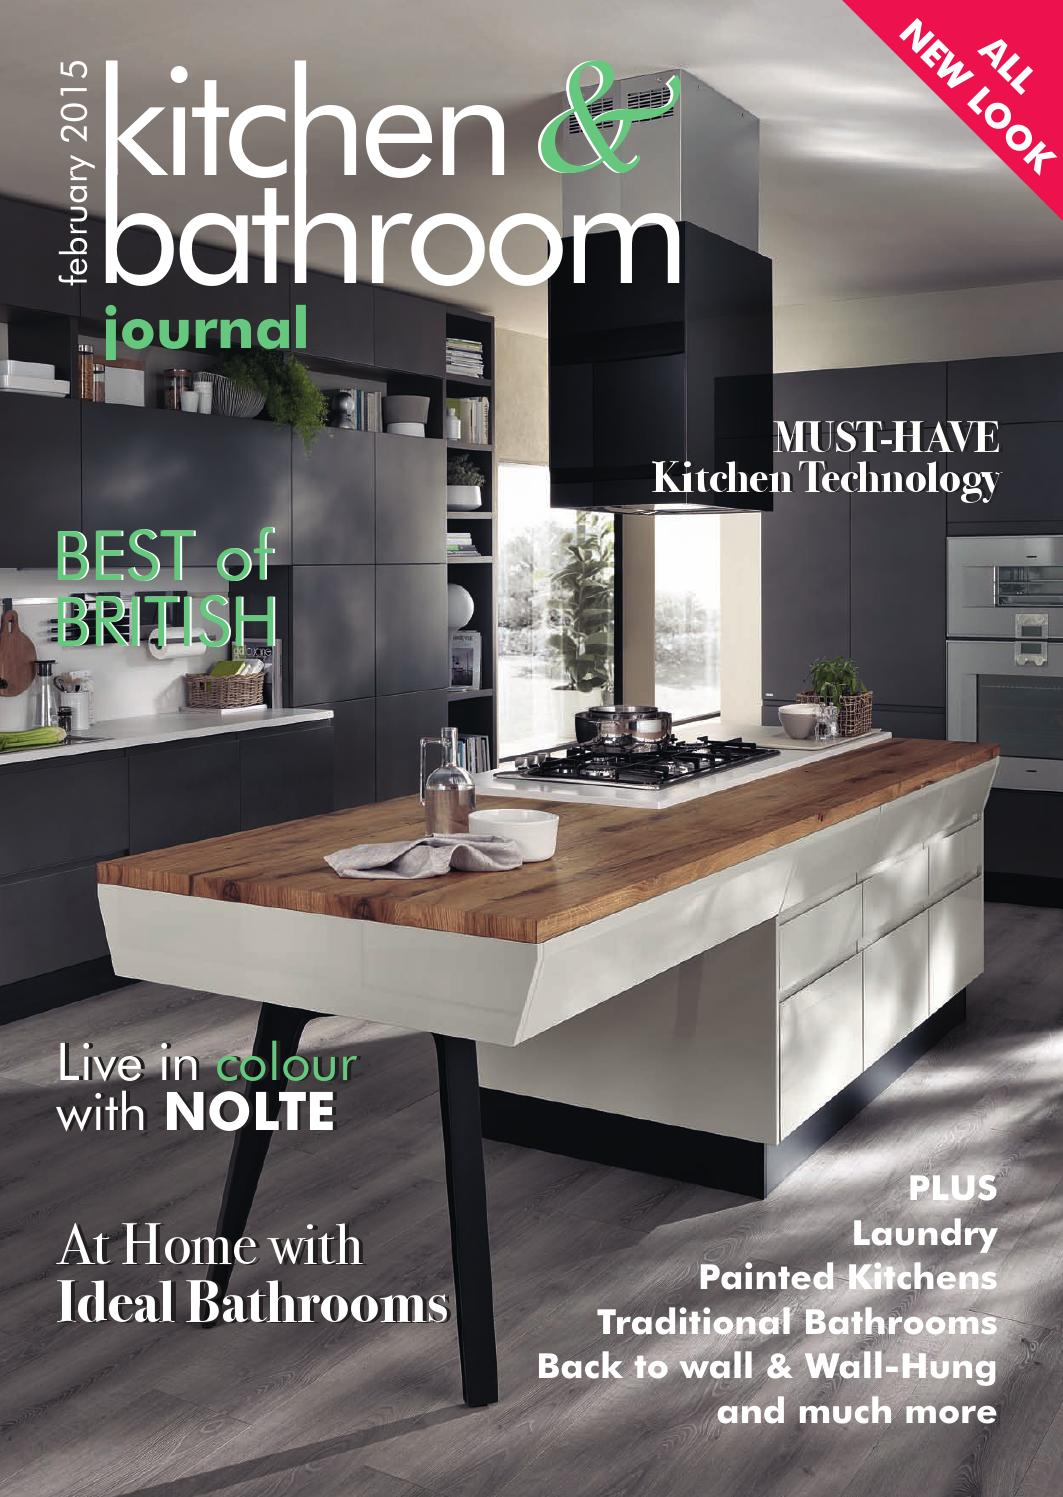 Bagnodesign Princess Nouveau K Bj Feb 2015 By Craftsman Publishing Co Ltd Issuu